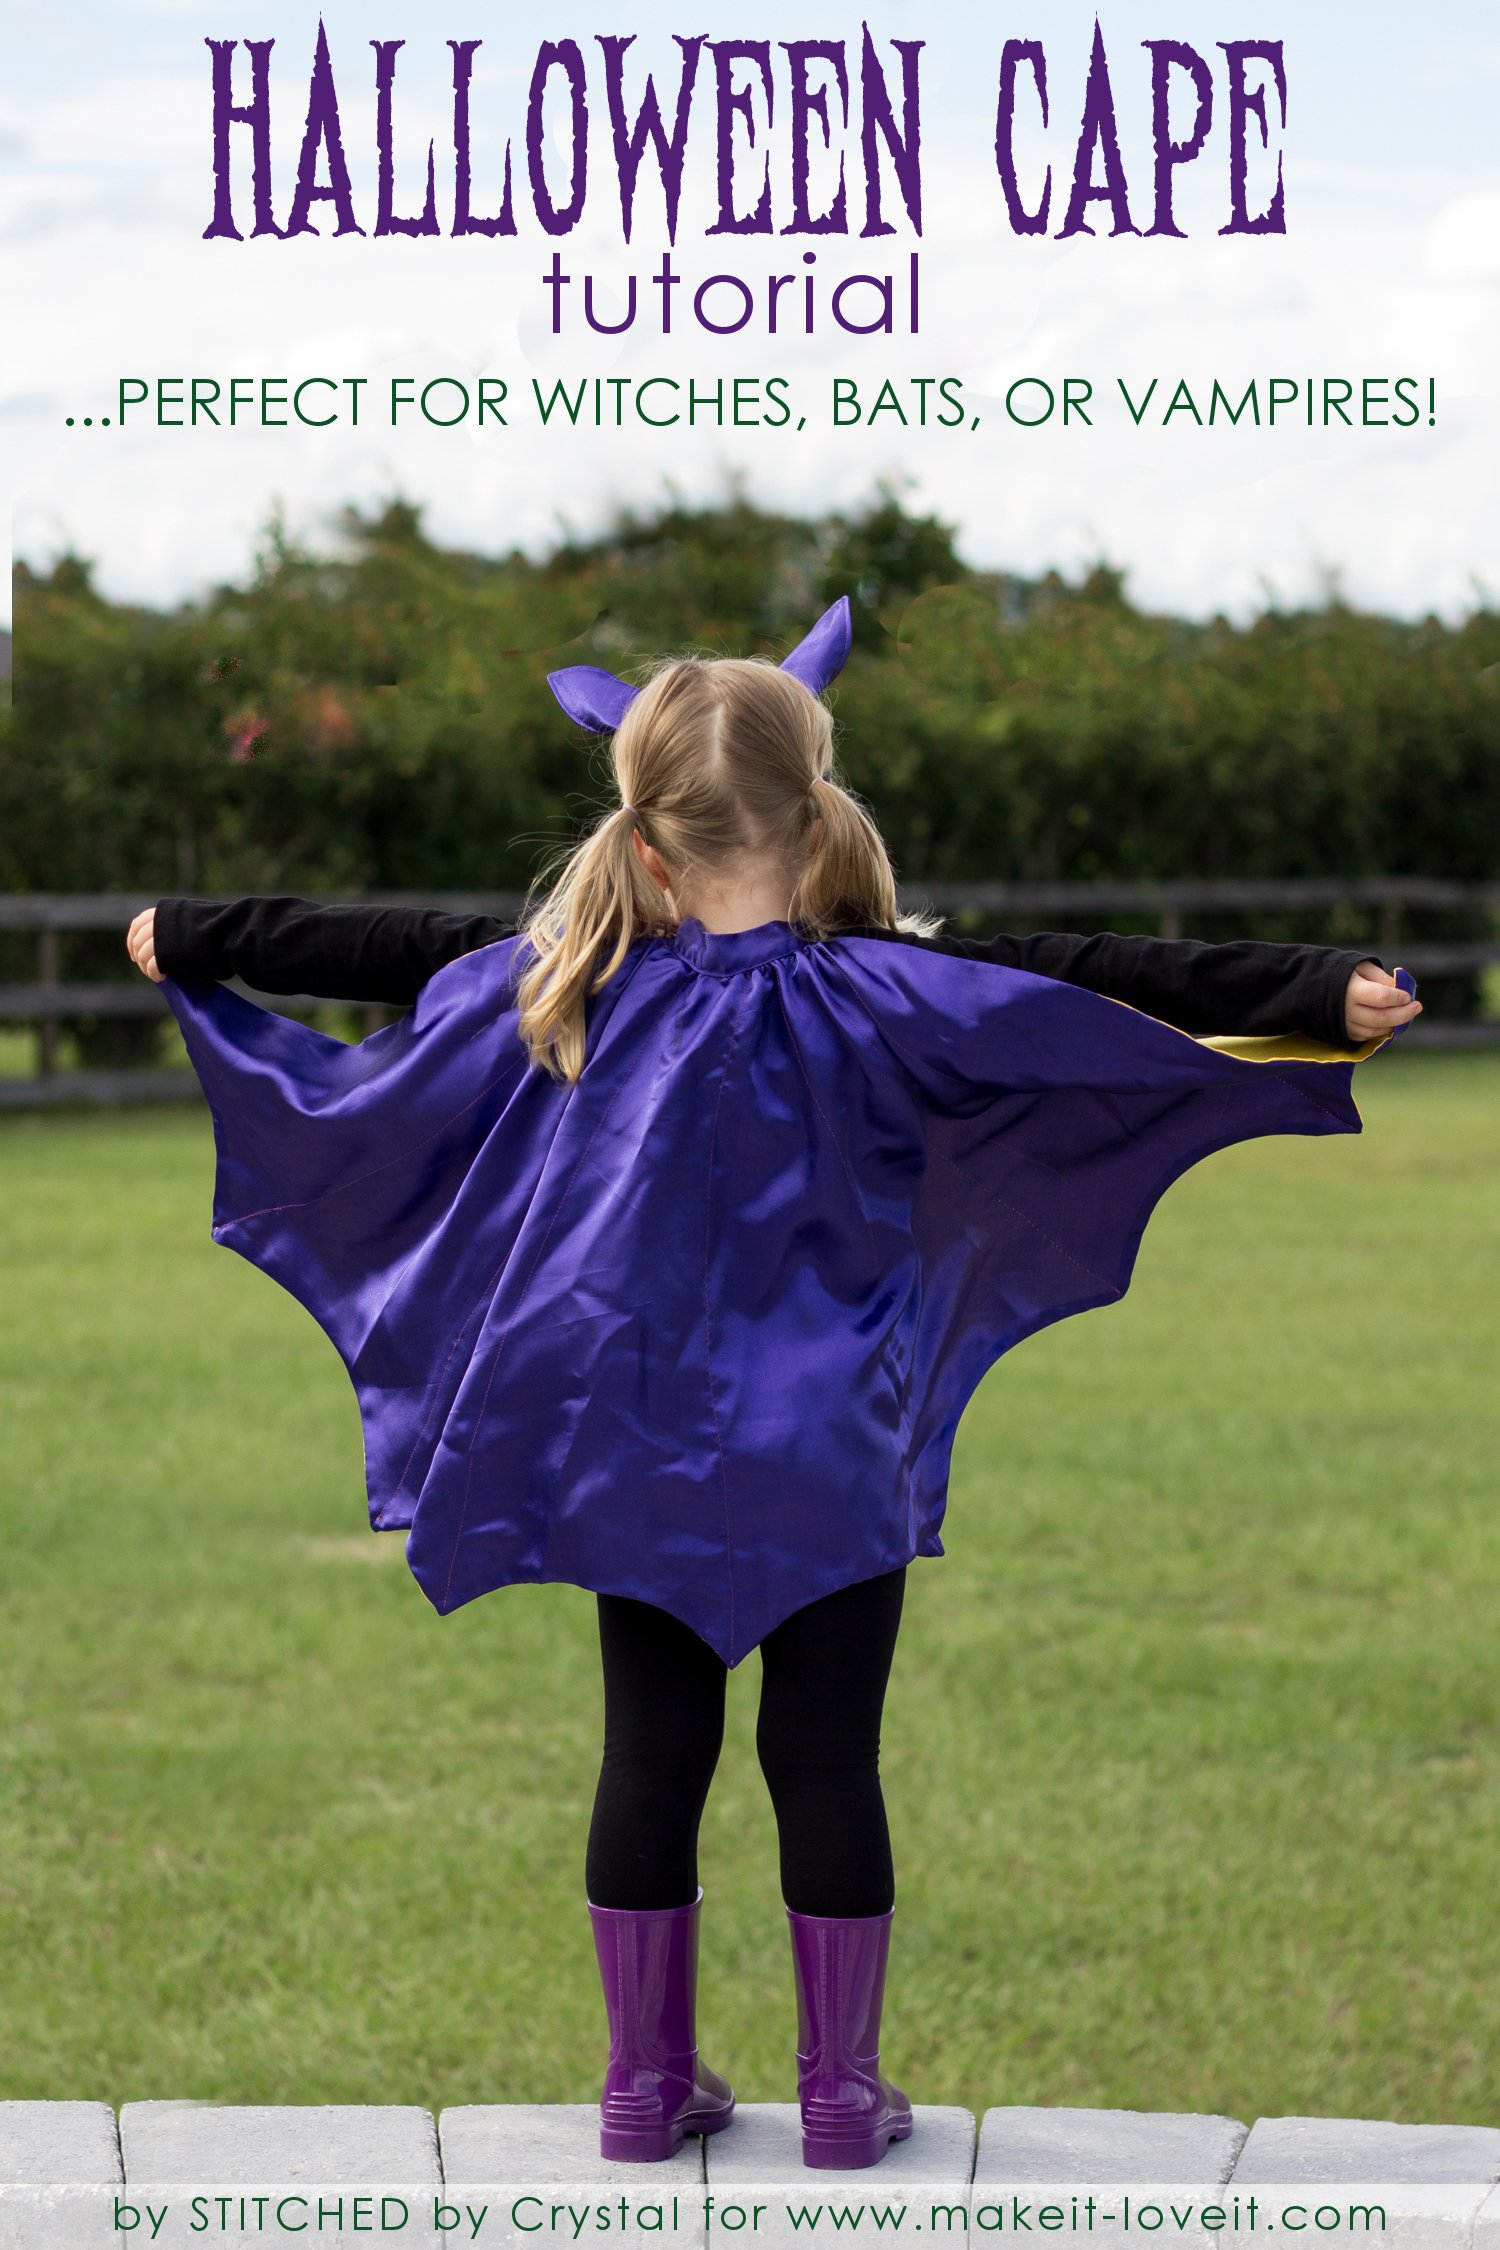 Sew A Reversible Halloween Cape....Perfect for Bats, Witches, and Vampires! | via www.makeit-loveit.com